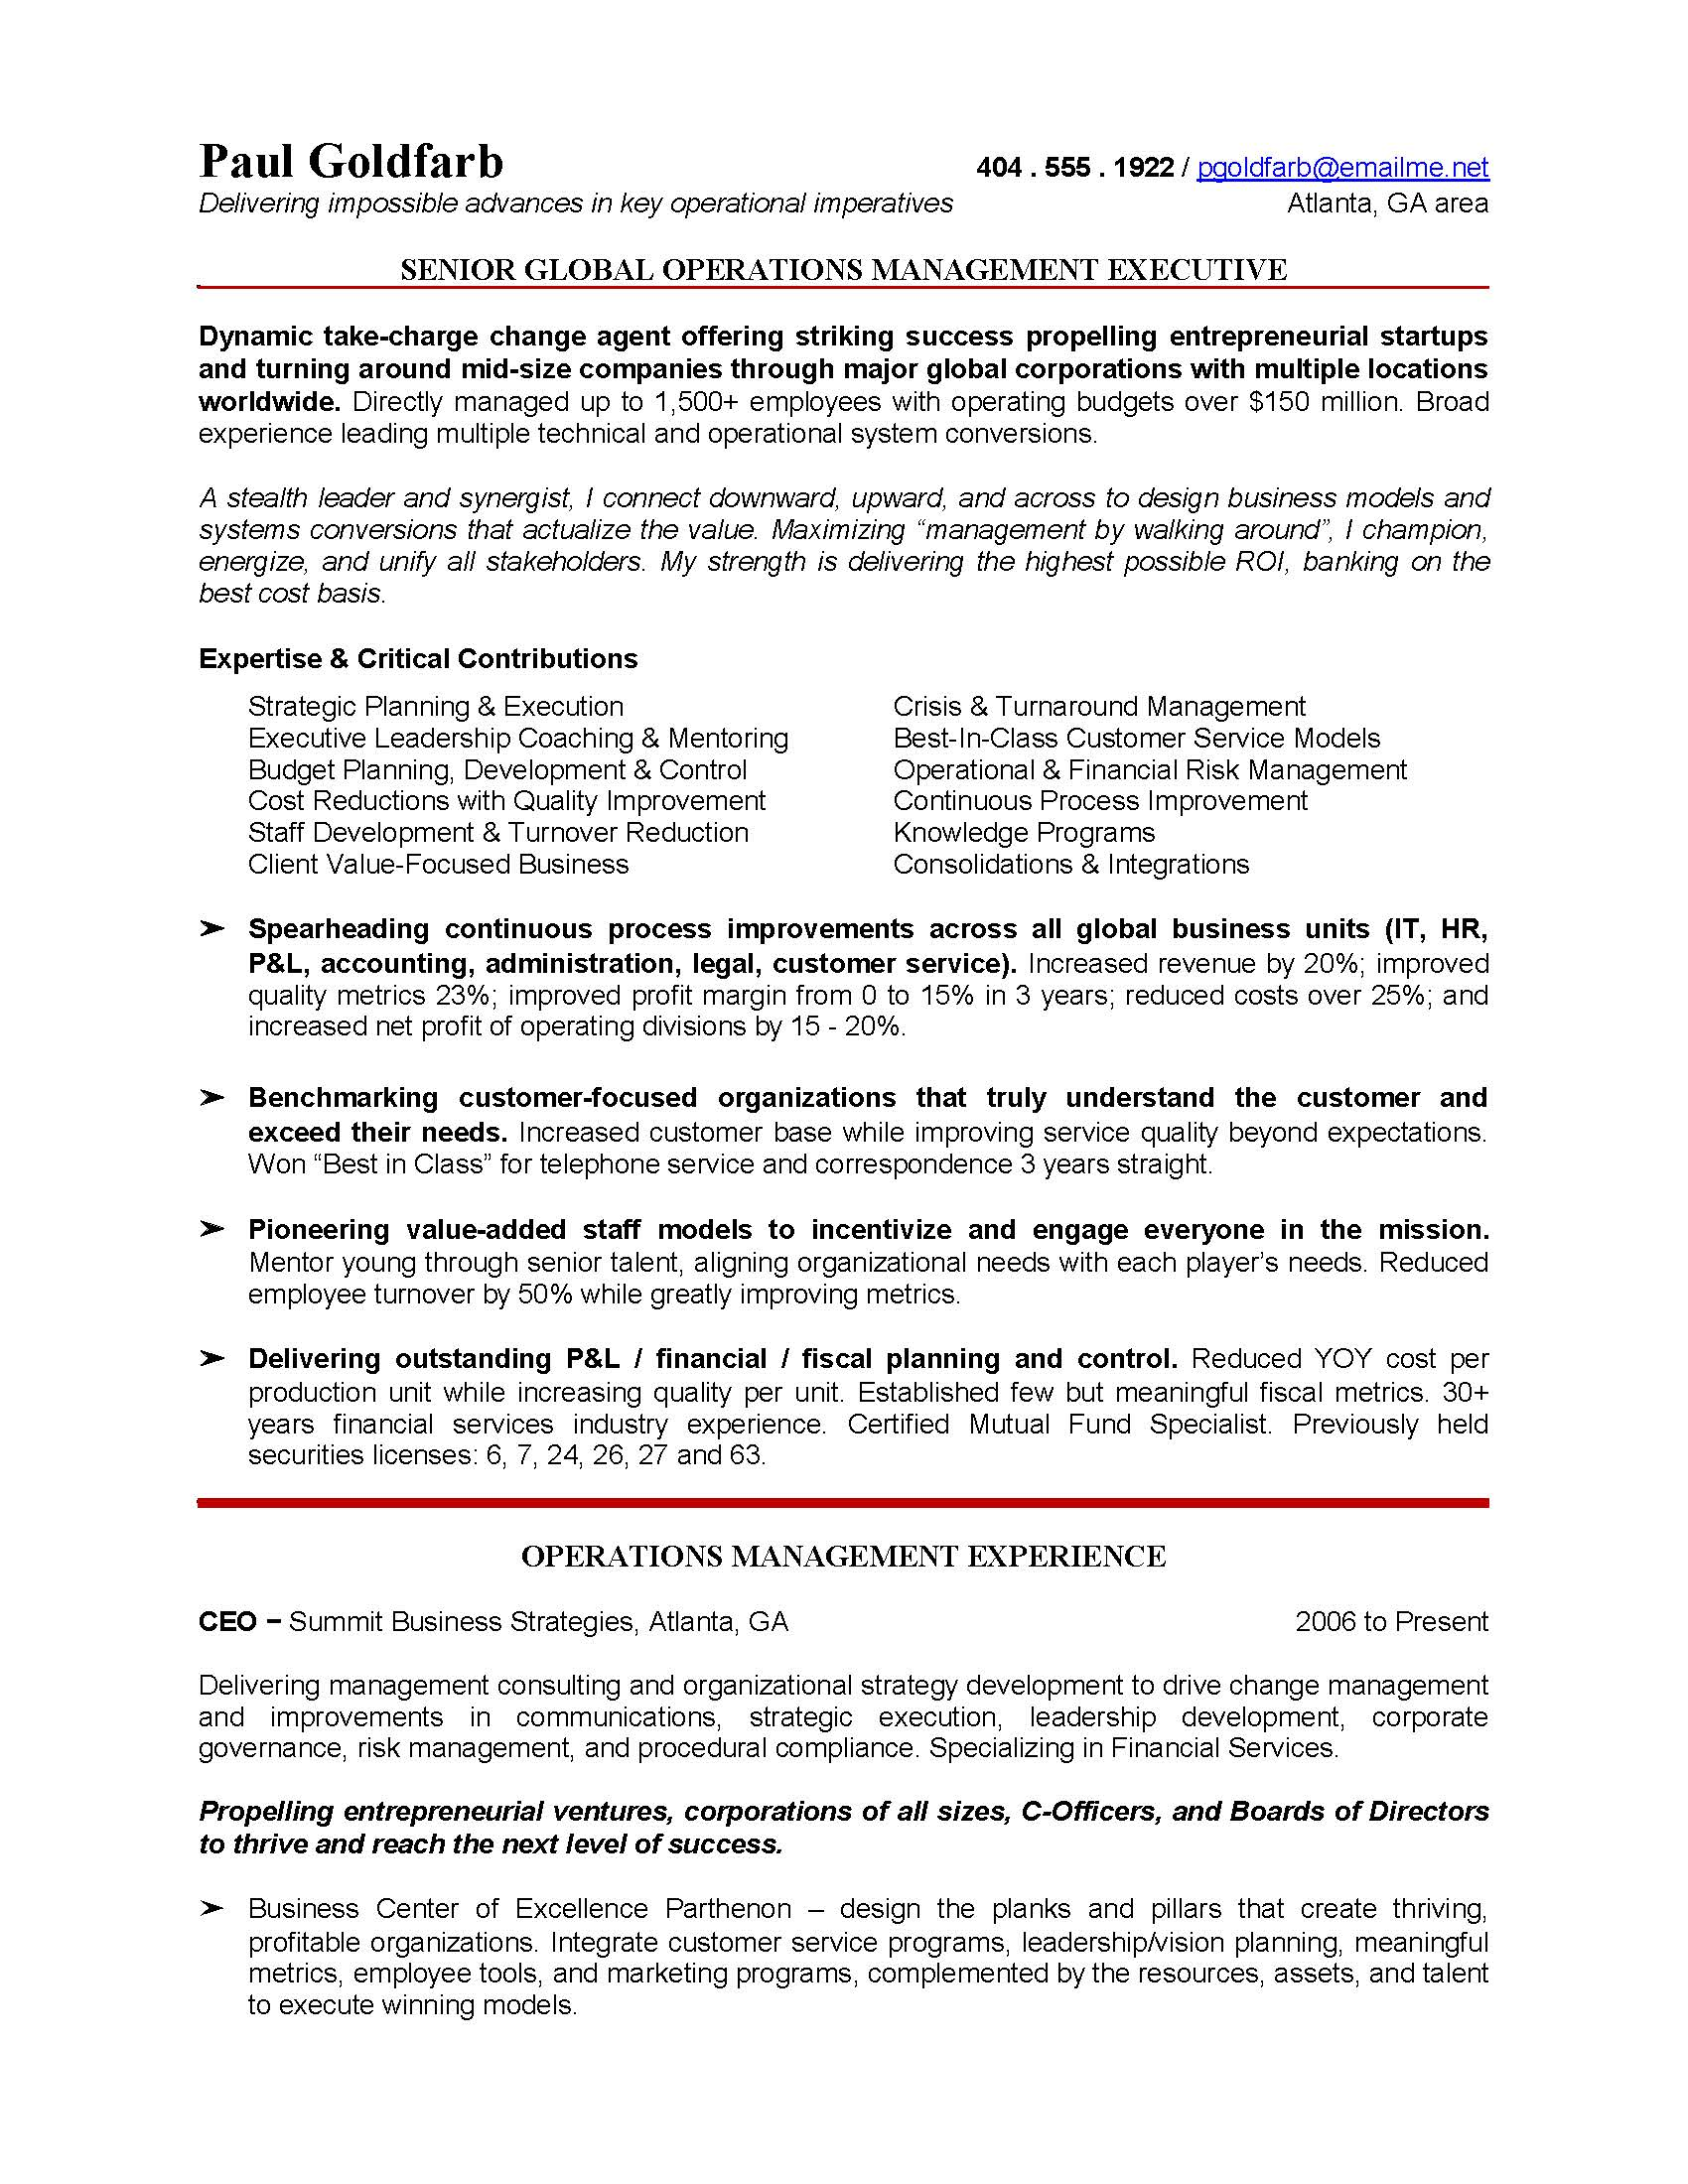 ceo resume templates pdf format database org broad experience free dtp police officer Resume Broad Experience Resume